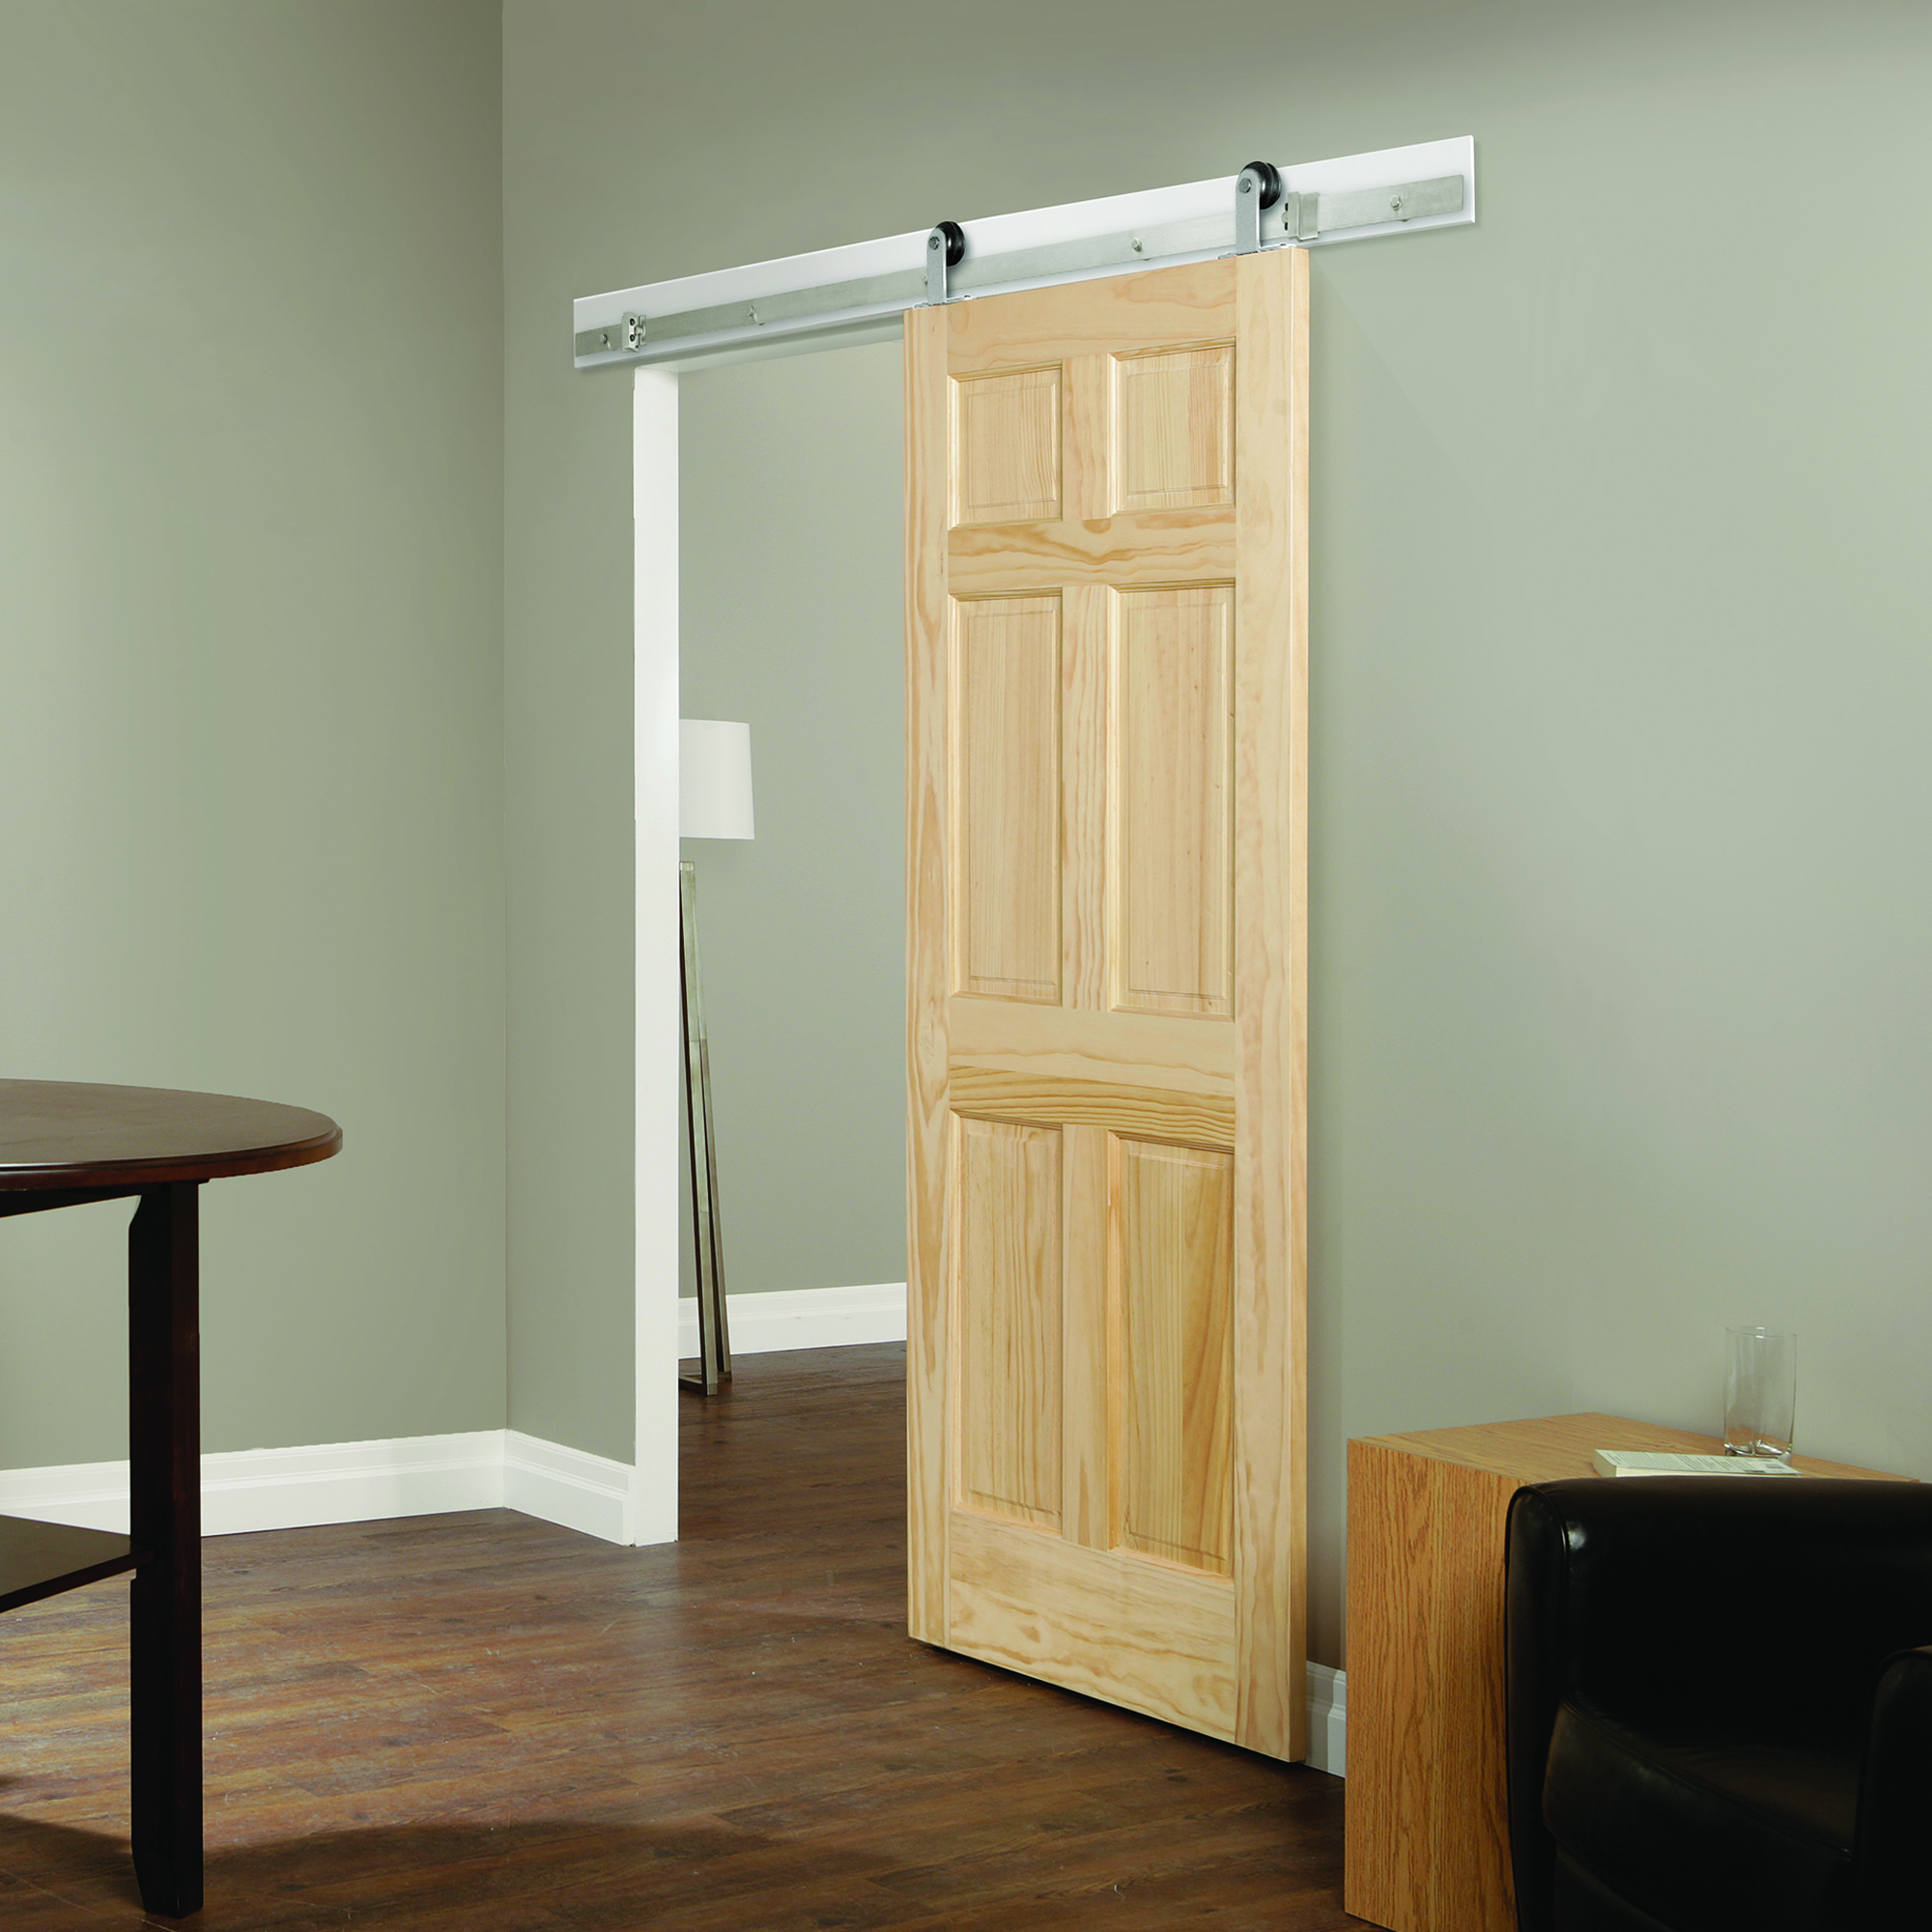 door style ideas picture homemade awesome barns hardware doors of barn sliding bar closet